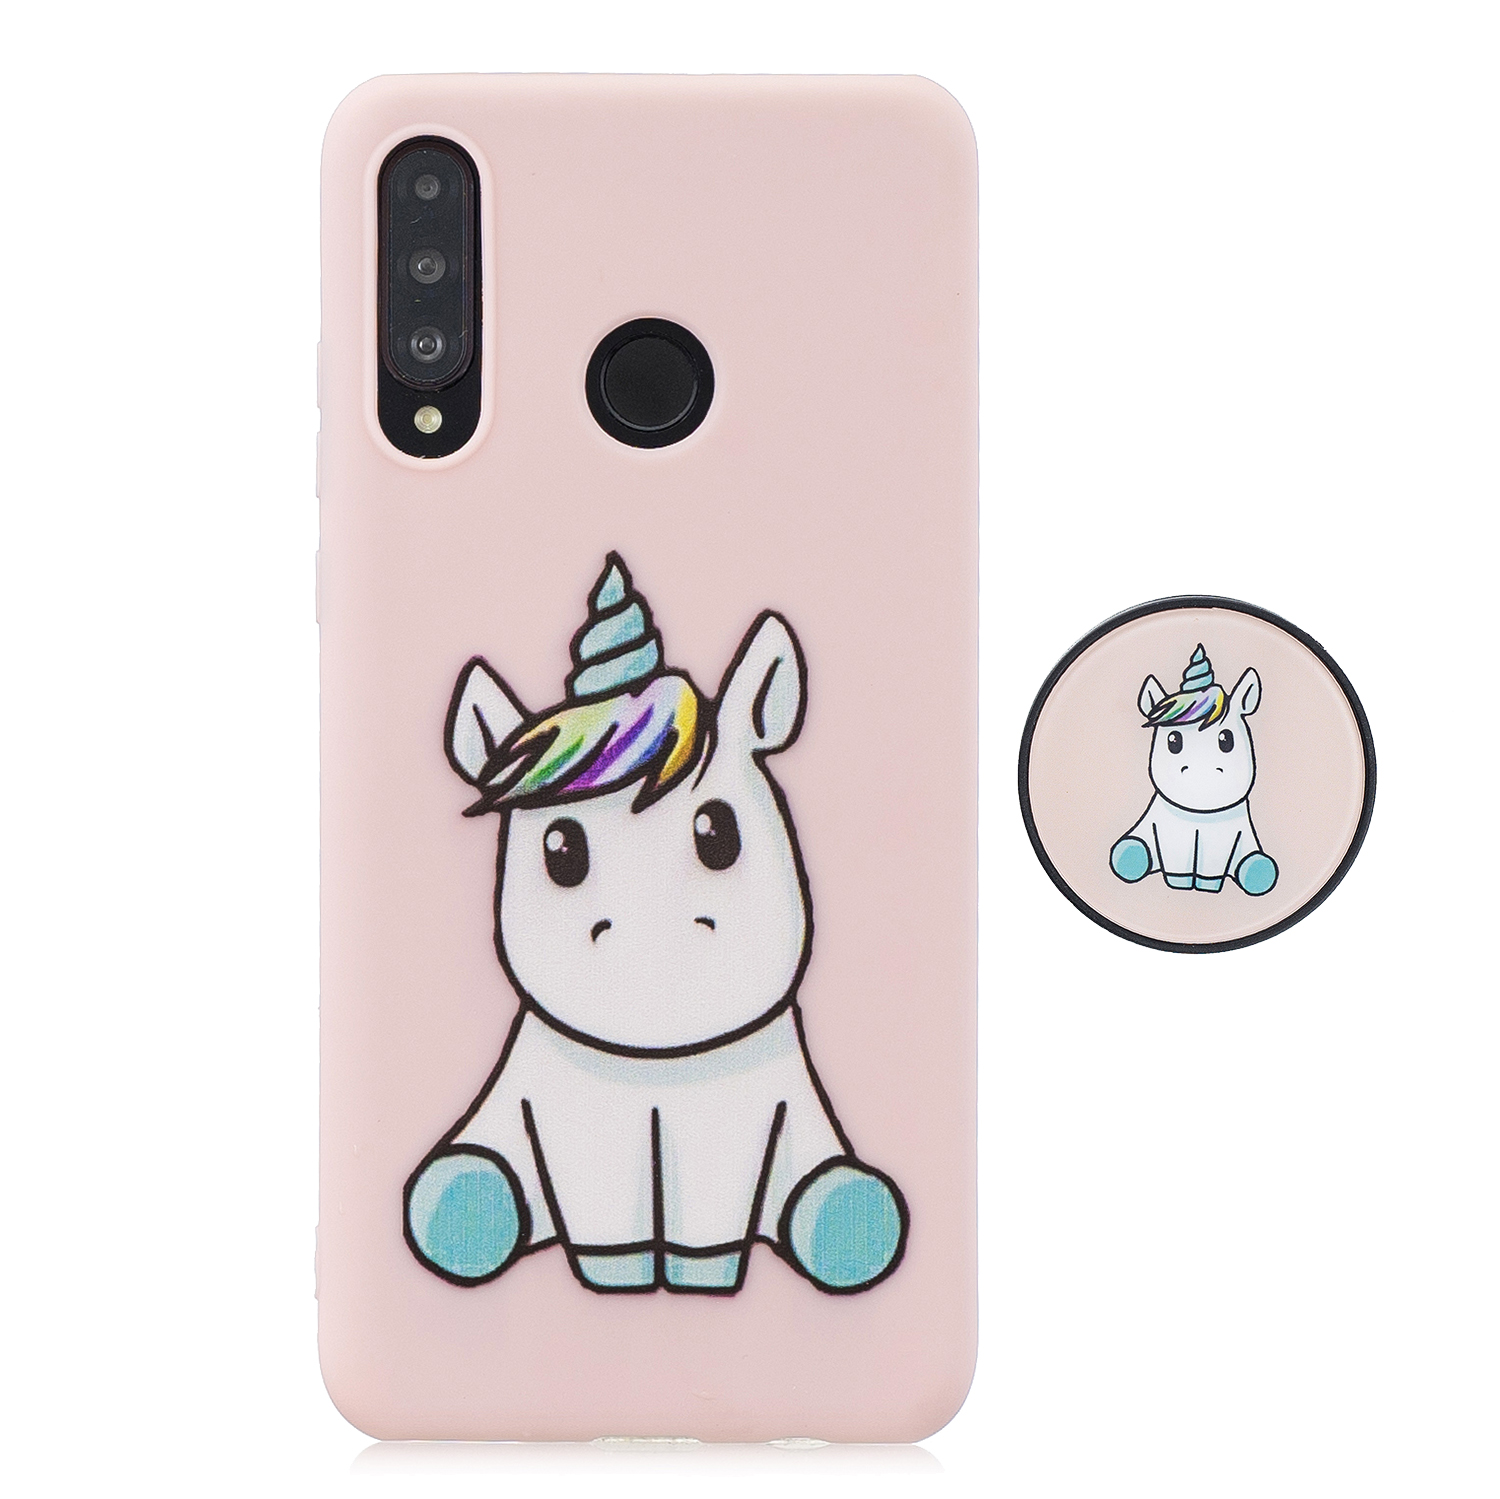 For HUAWEI P30 lite Cute Cartoon Phone Case Ultra Thin Lightweight Soft TPU Phone Case Pure Color Phone Cover with Matching Pattern Adjustable Bracket 6